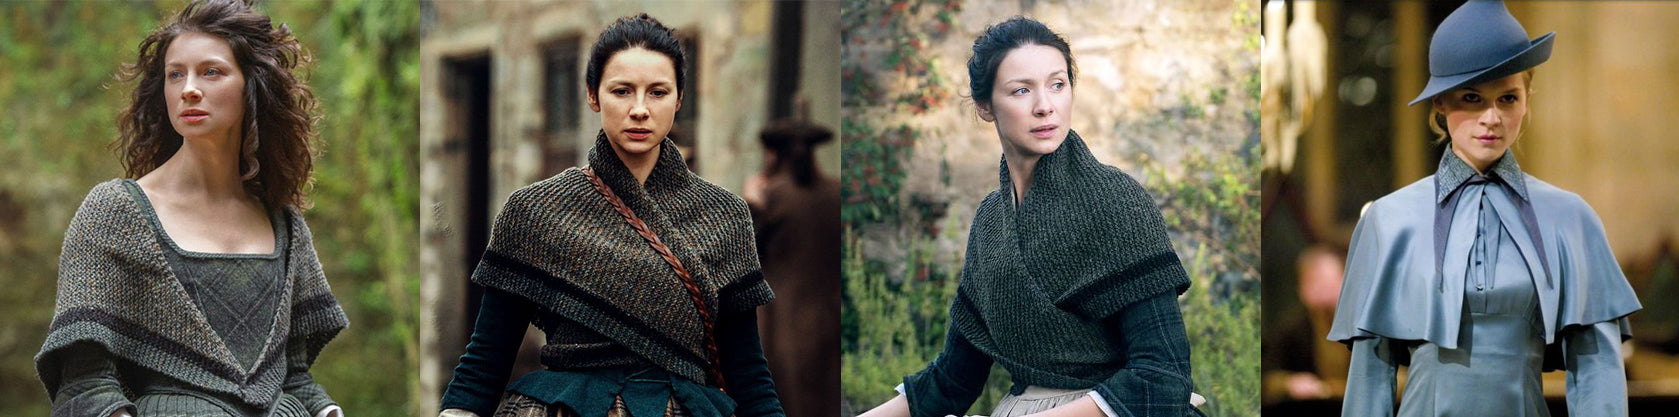 Claire Fraser and Brianna Fraser from Outlander, Fleur Delacour from Harry Potter